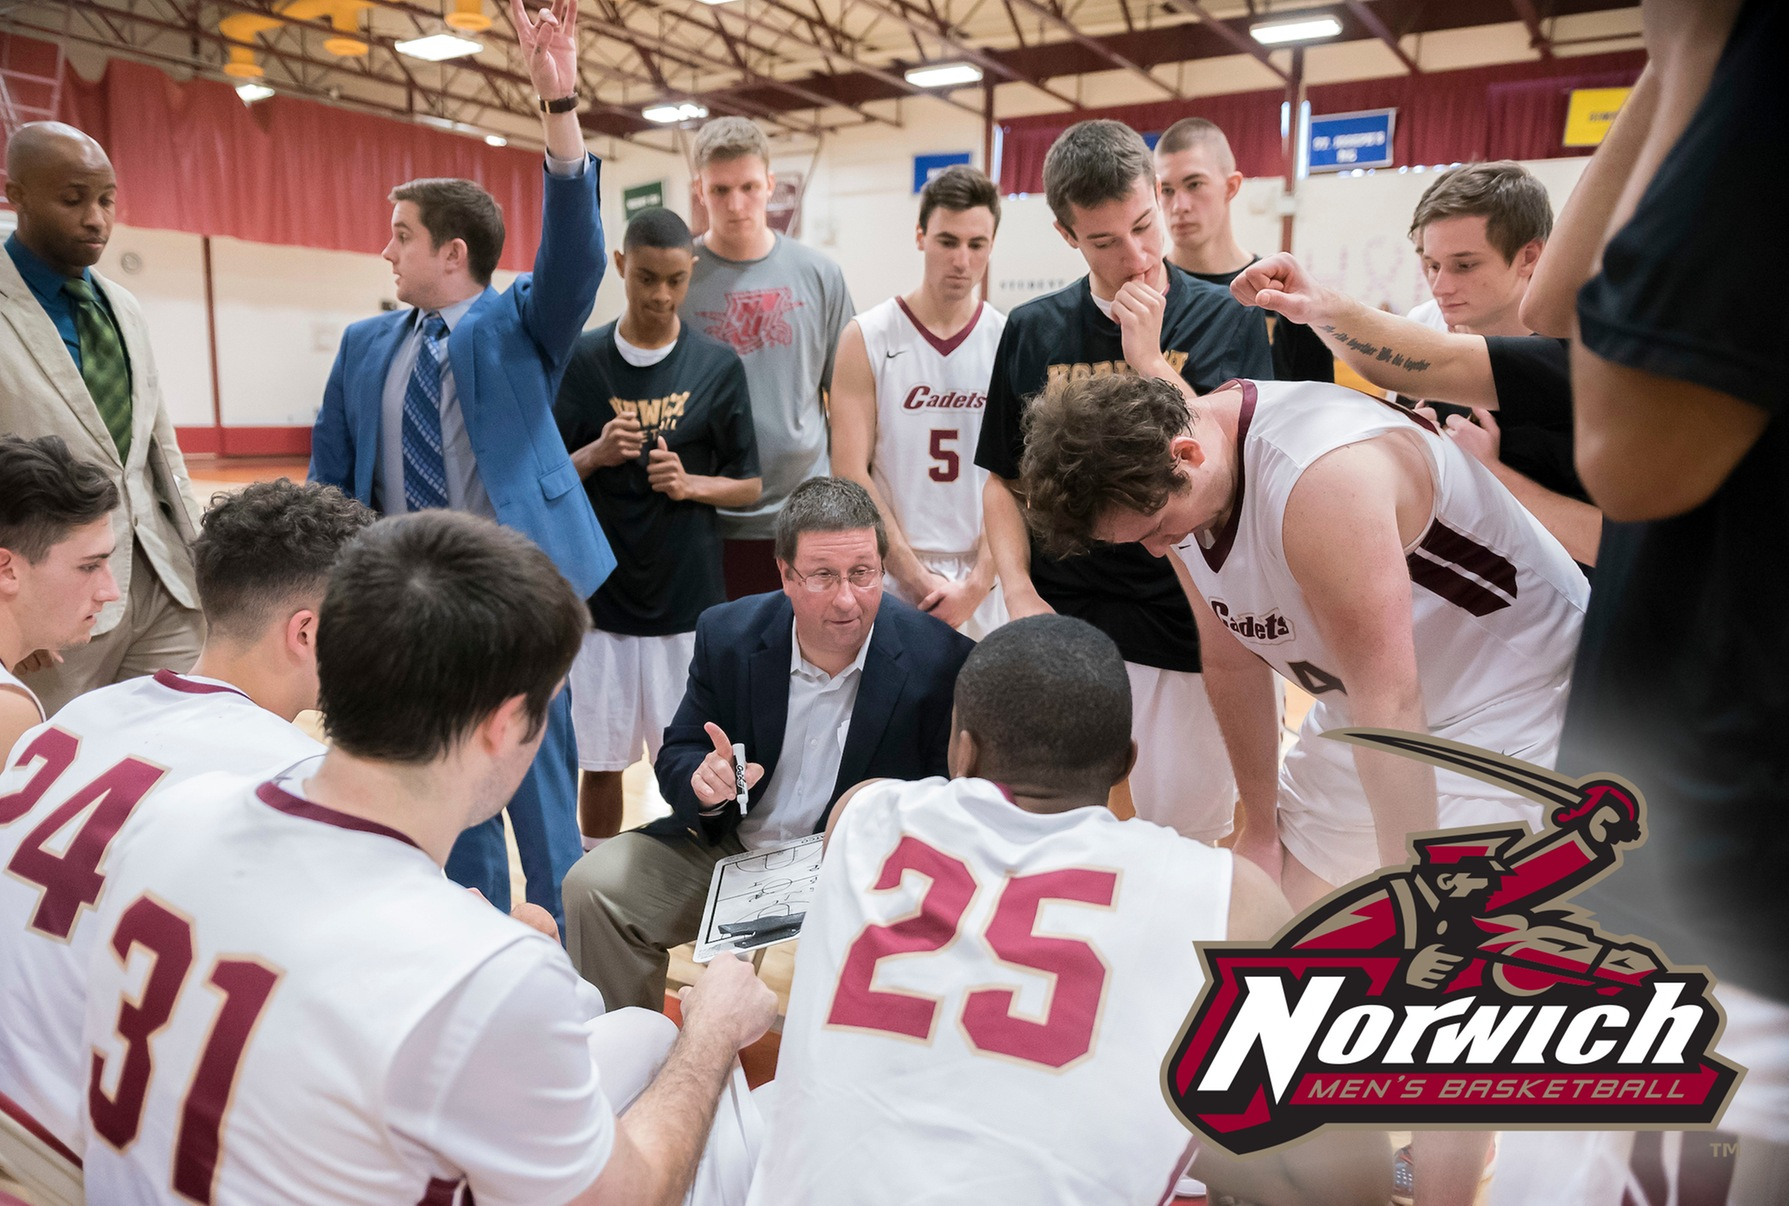 Basketball: Jeff Brown, Greg Eckman to headline second annual Norwich University Coaches Clinic on Oct. 28th